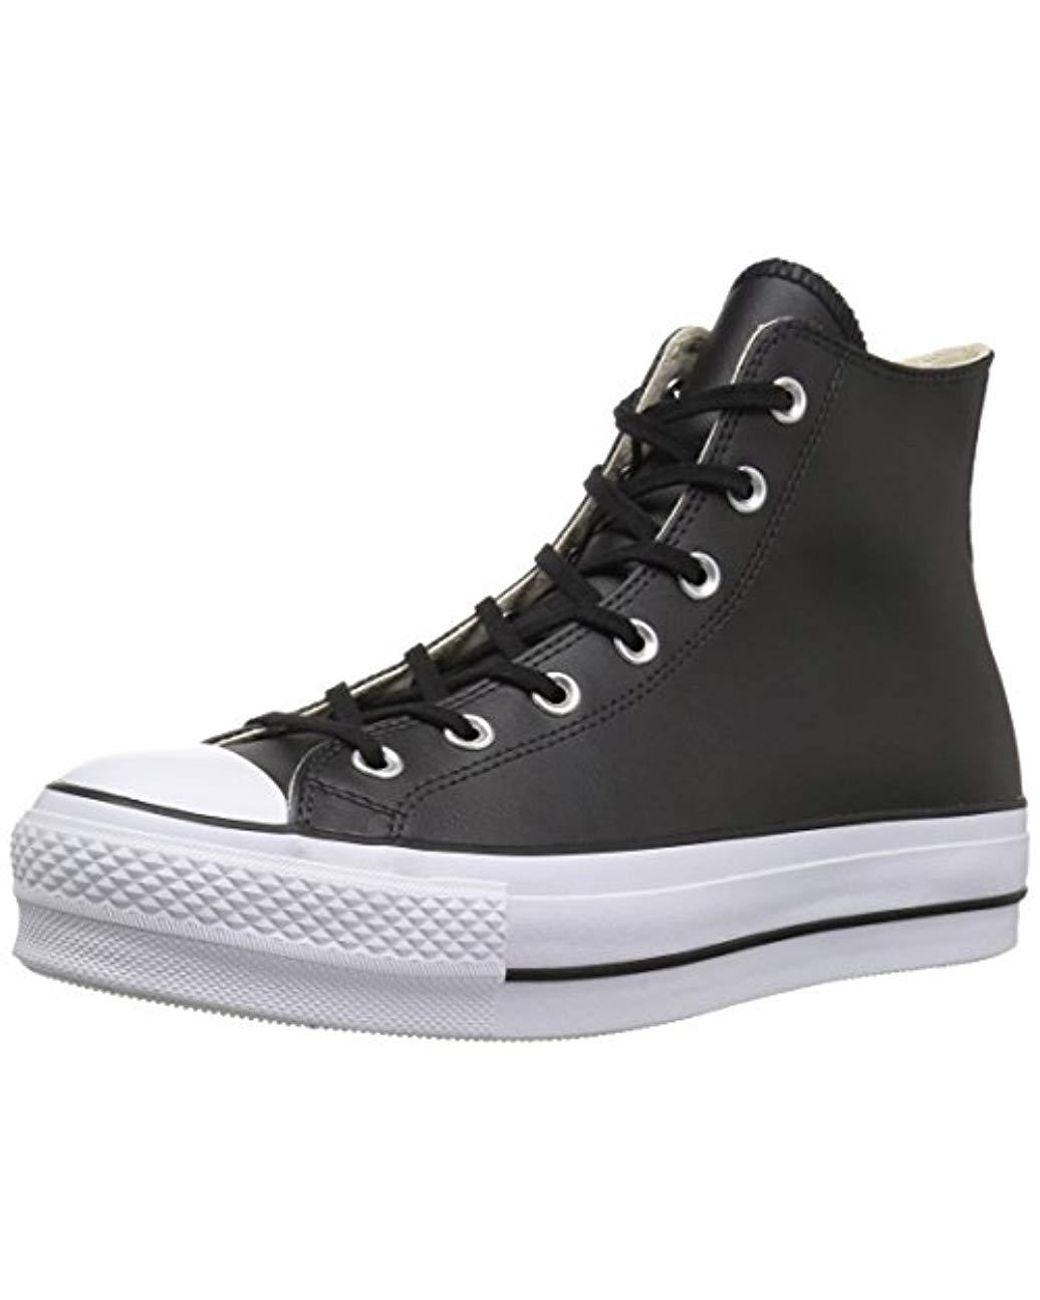 bbb4c0747610 Lyst - Converse Chuck Taylor All Star Lift Clean High Top Sneaker in Black